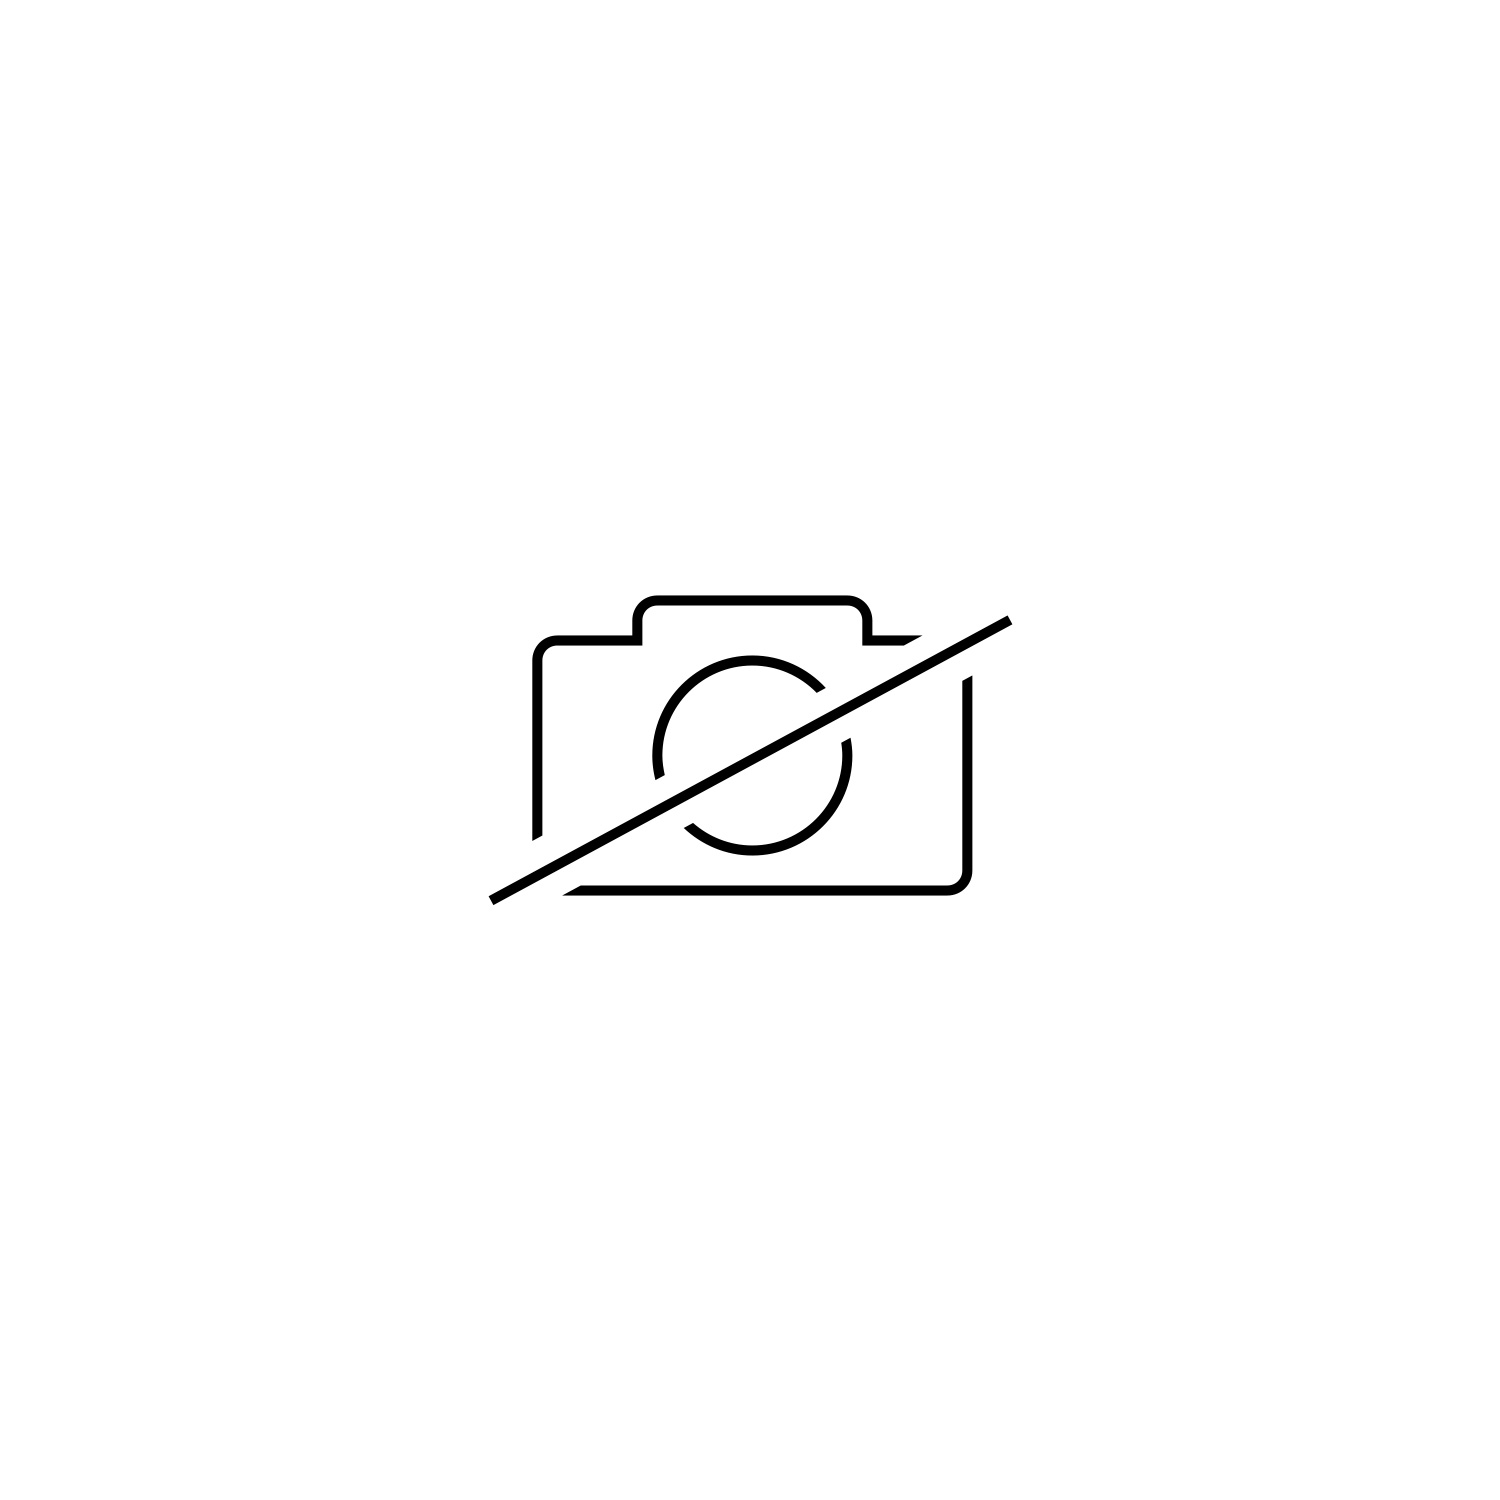 quattro T-Shirt, Mens, Light grey, L